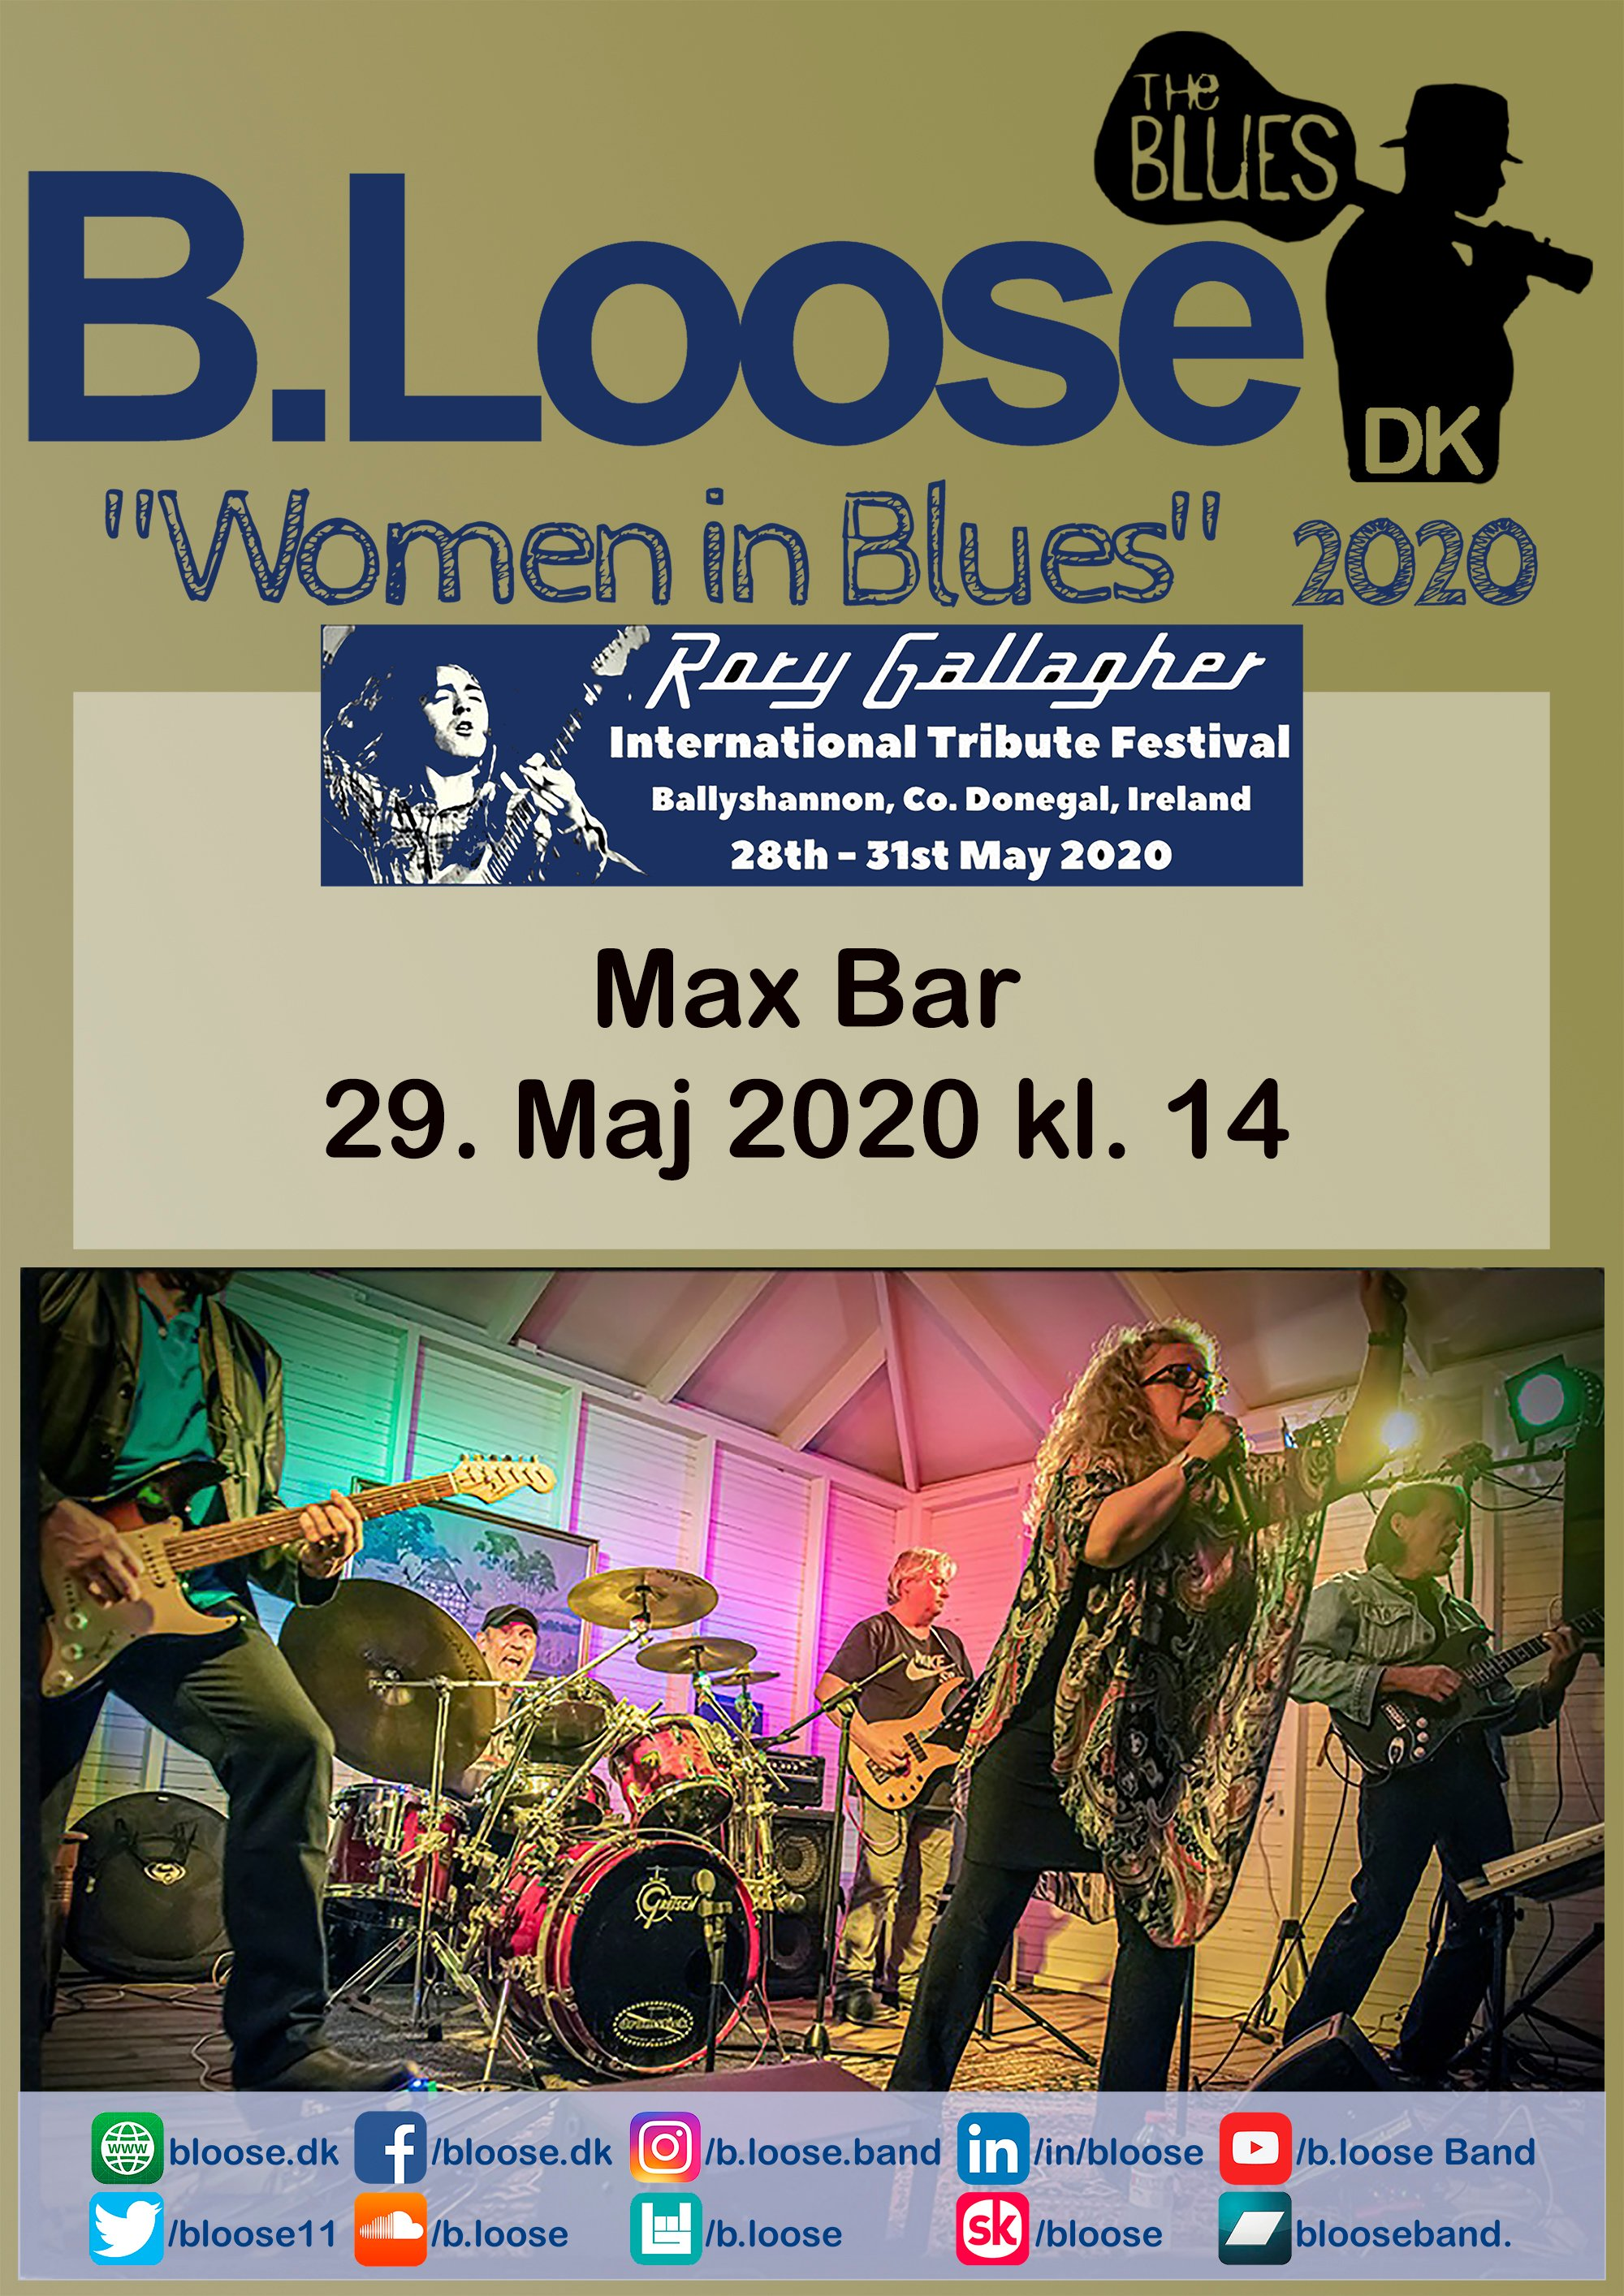 2020.5.29 Max Bar - Rory Gallagher Festival